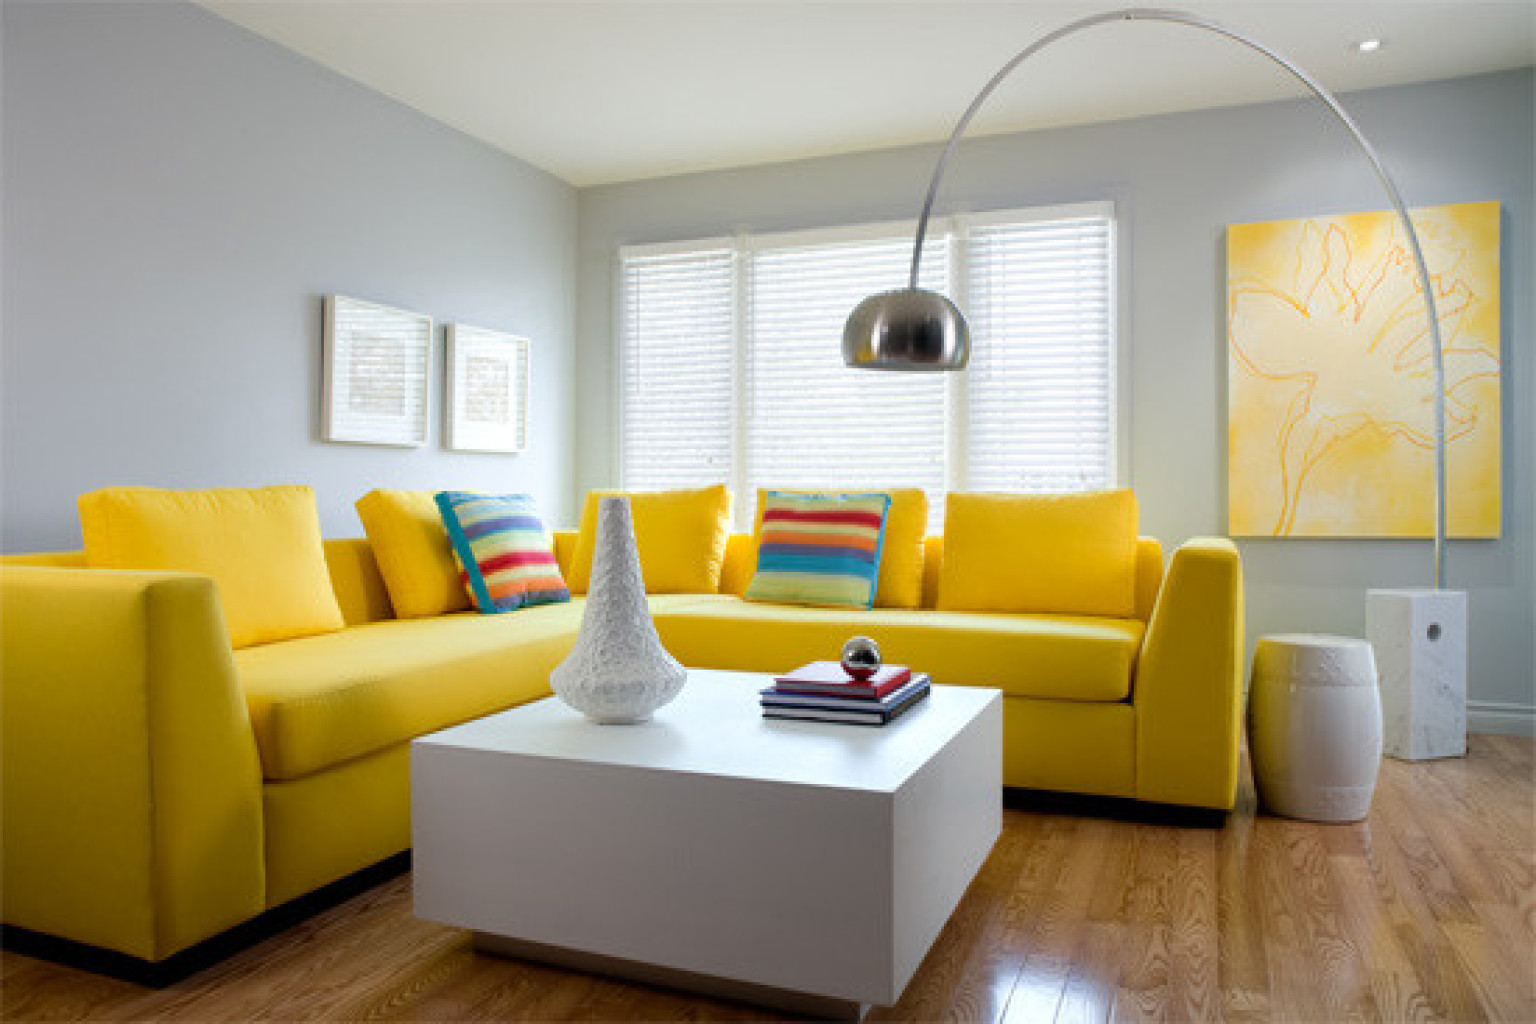 Colorful Dcor That Will Make a Statement in Your Home